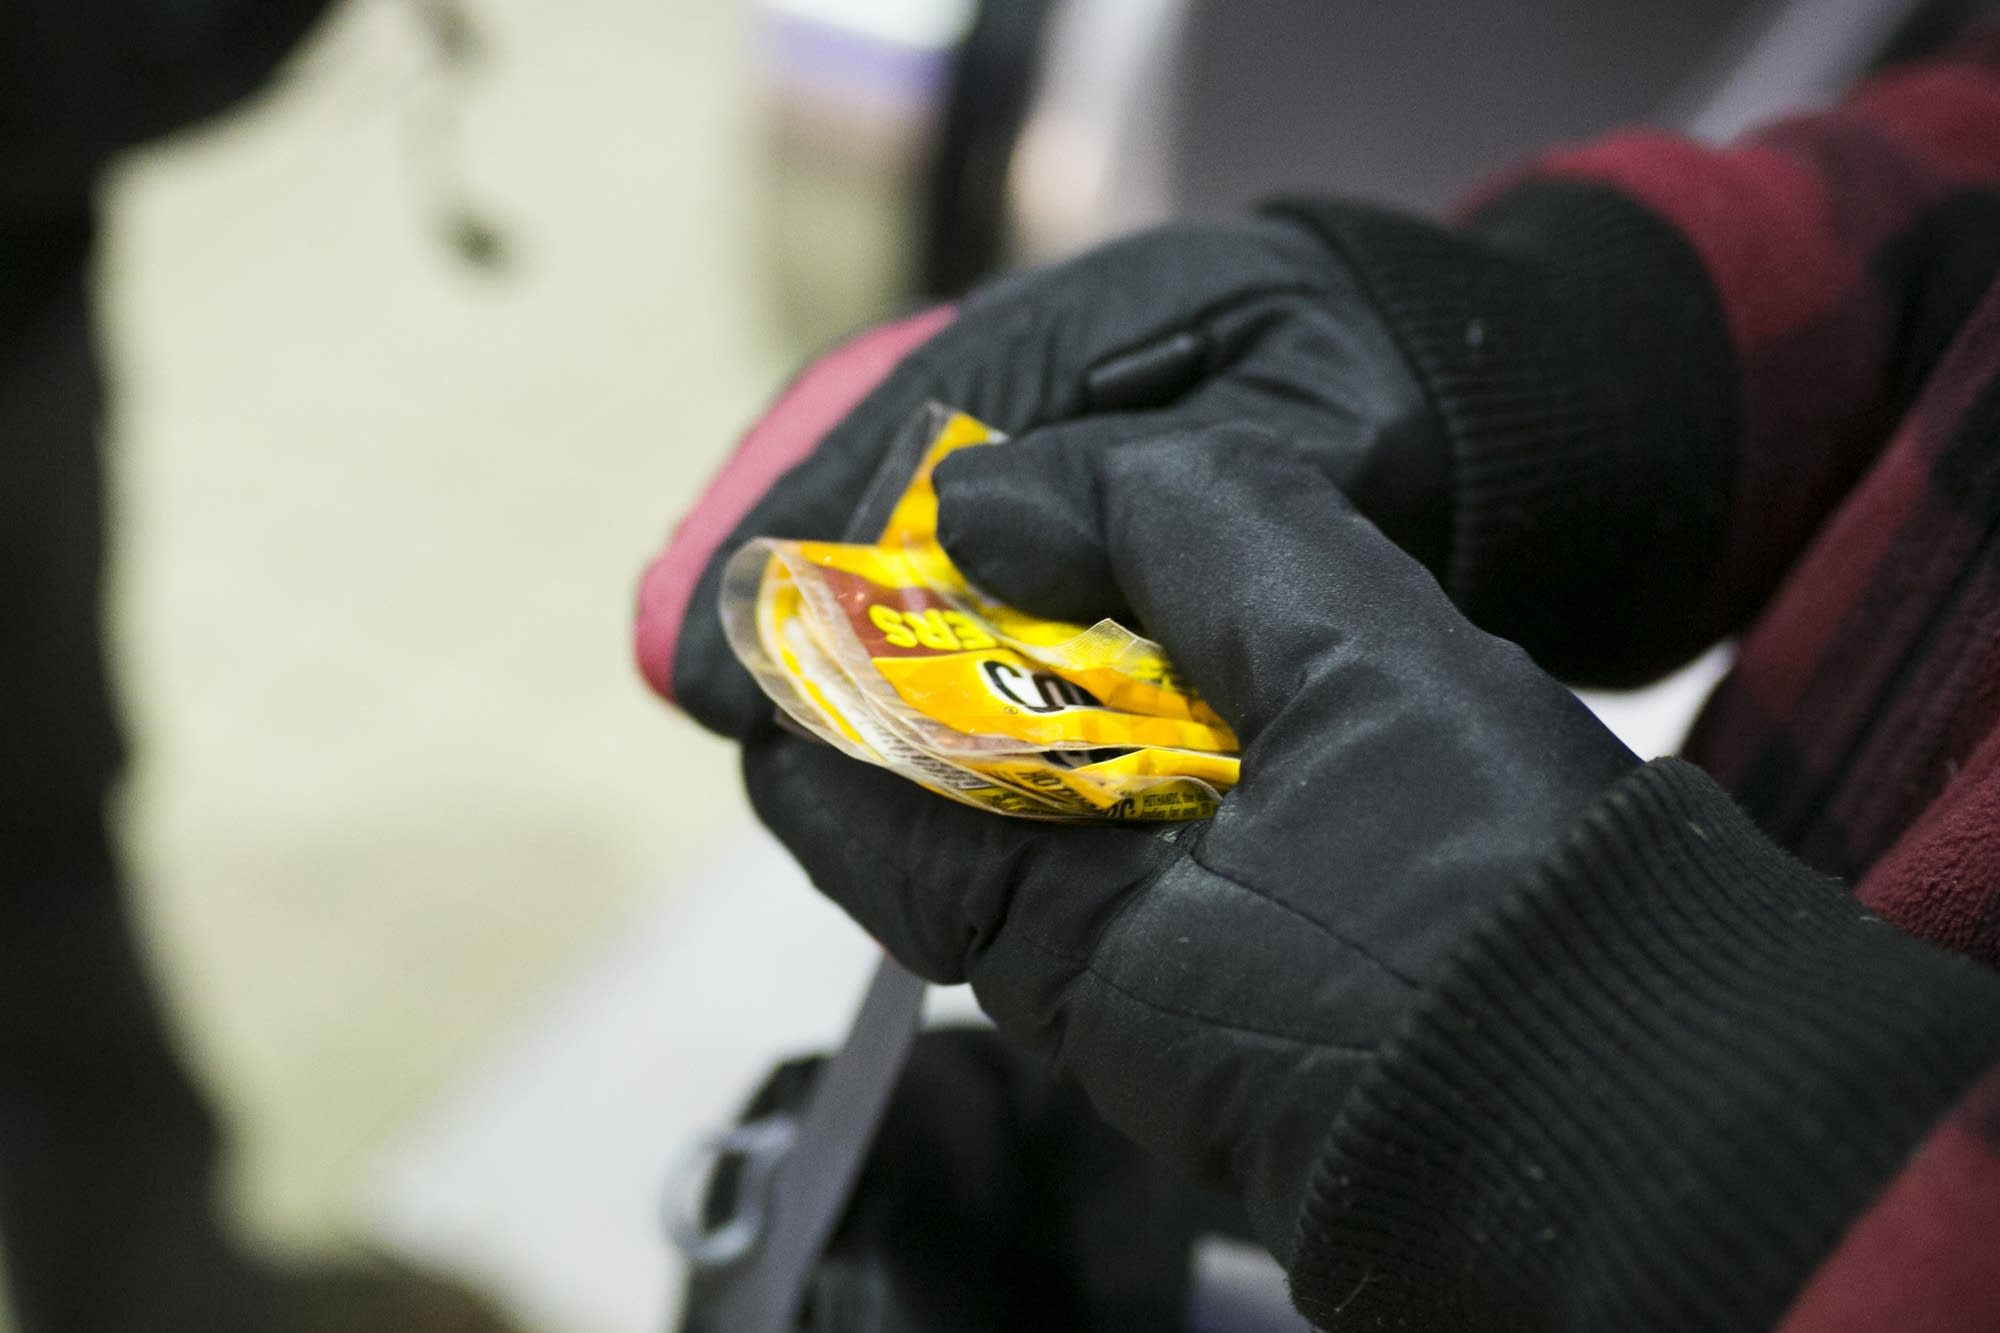 Gregory Graham holds packets of hand warmers